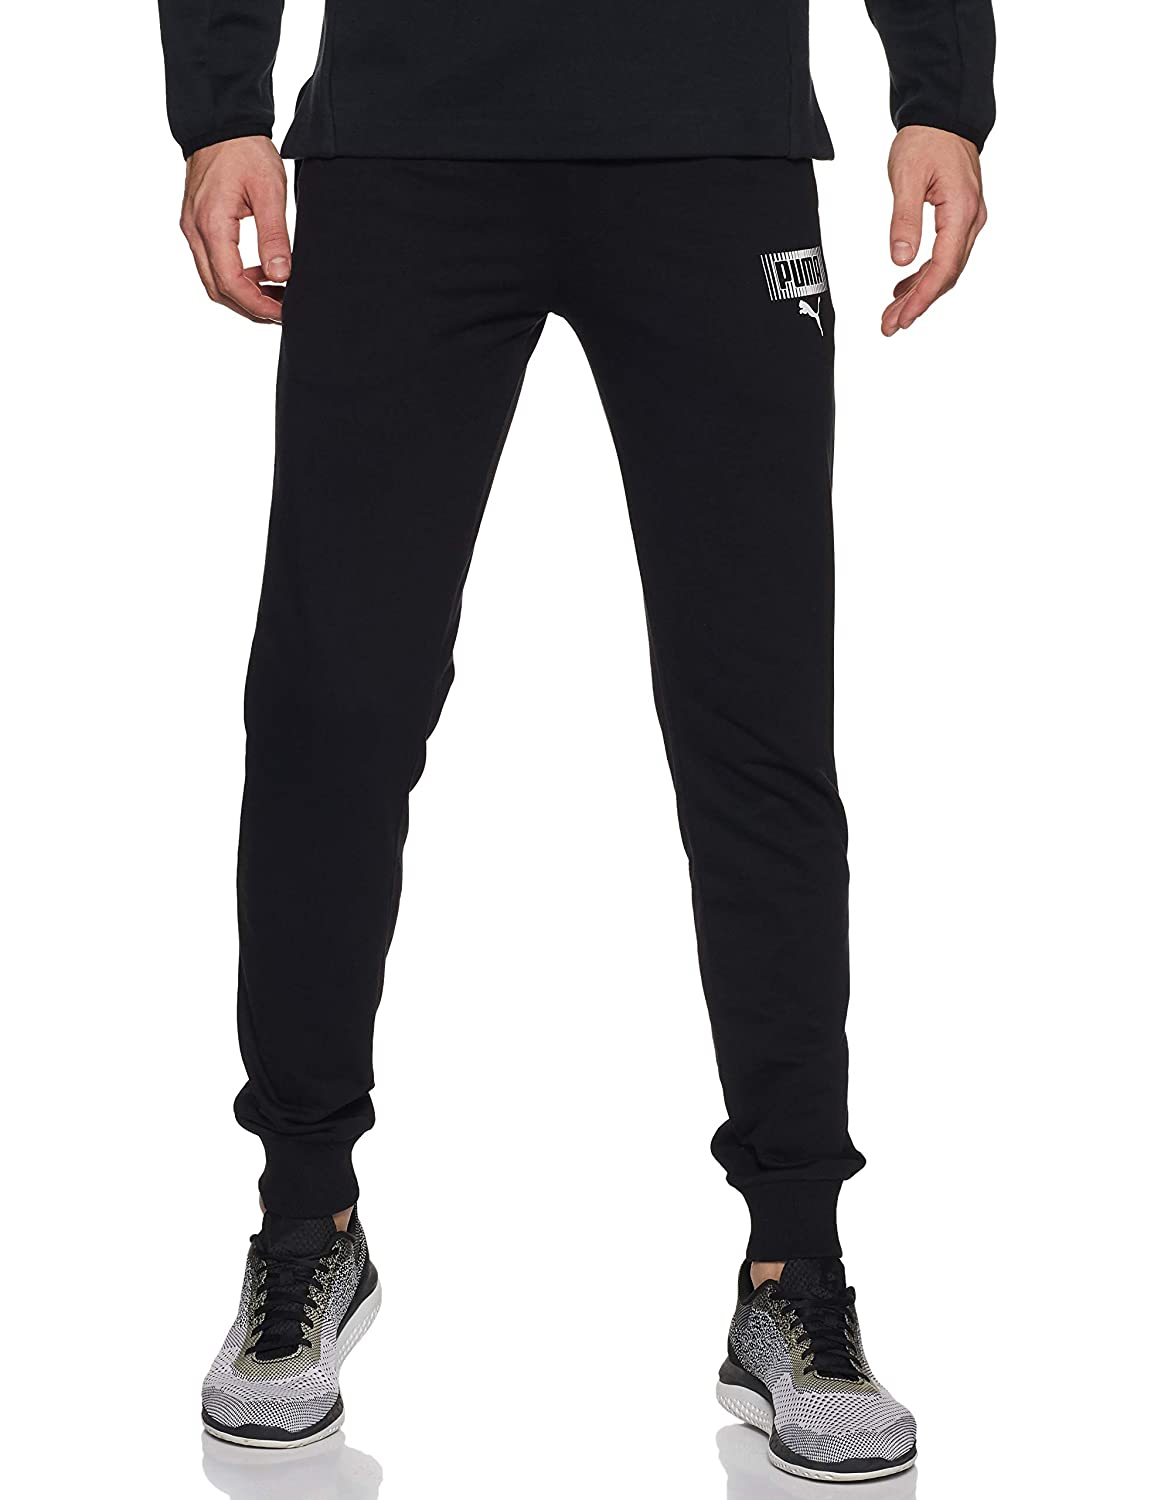 PUMA Men's track pants up to 75% OFF from Rs 632 at Amazon